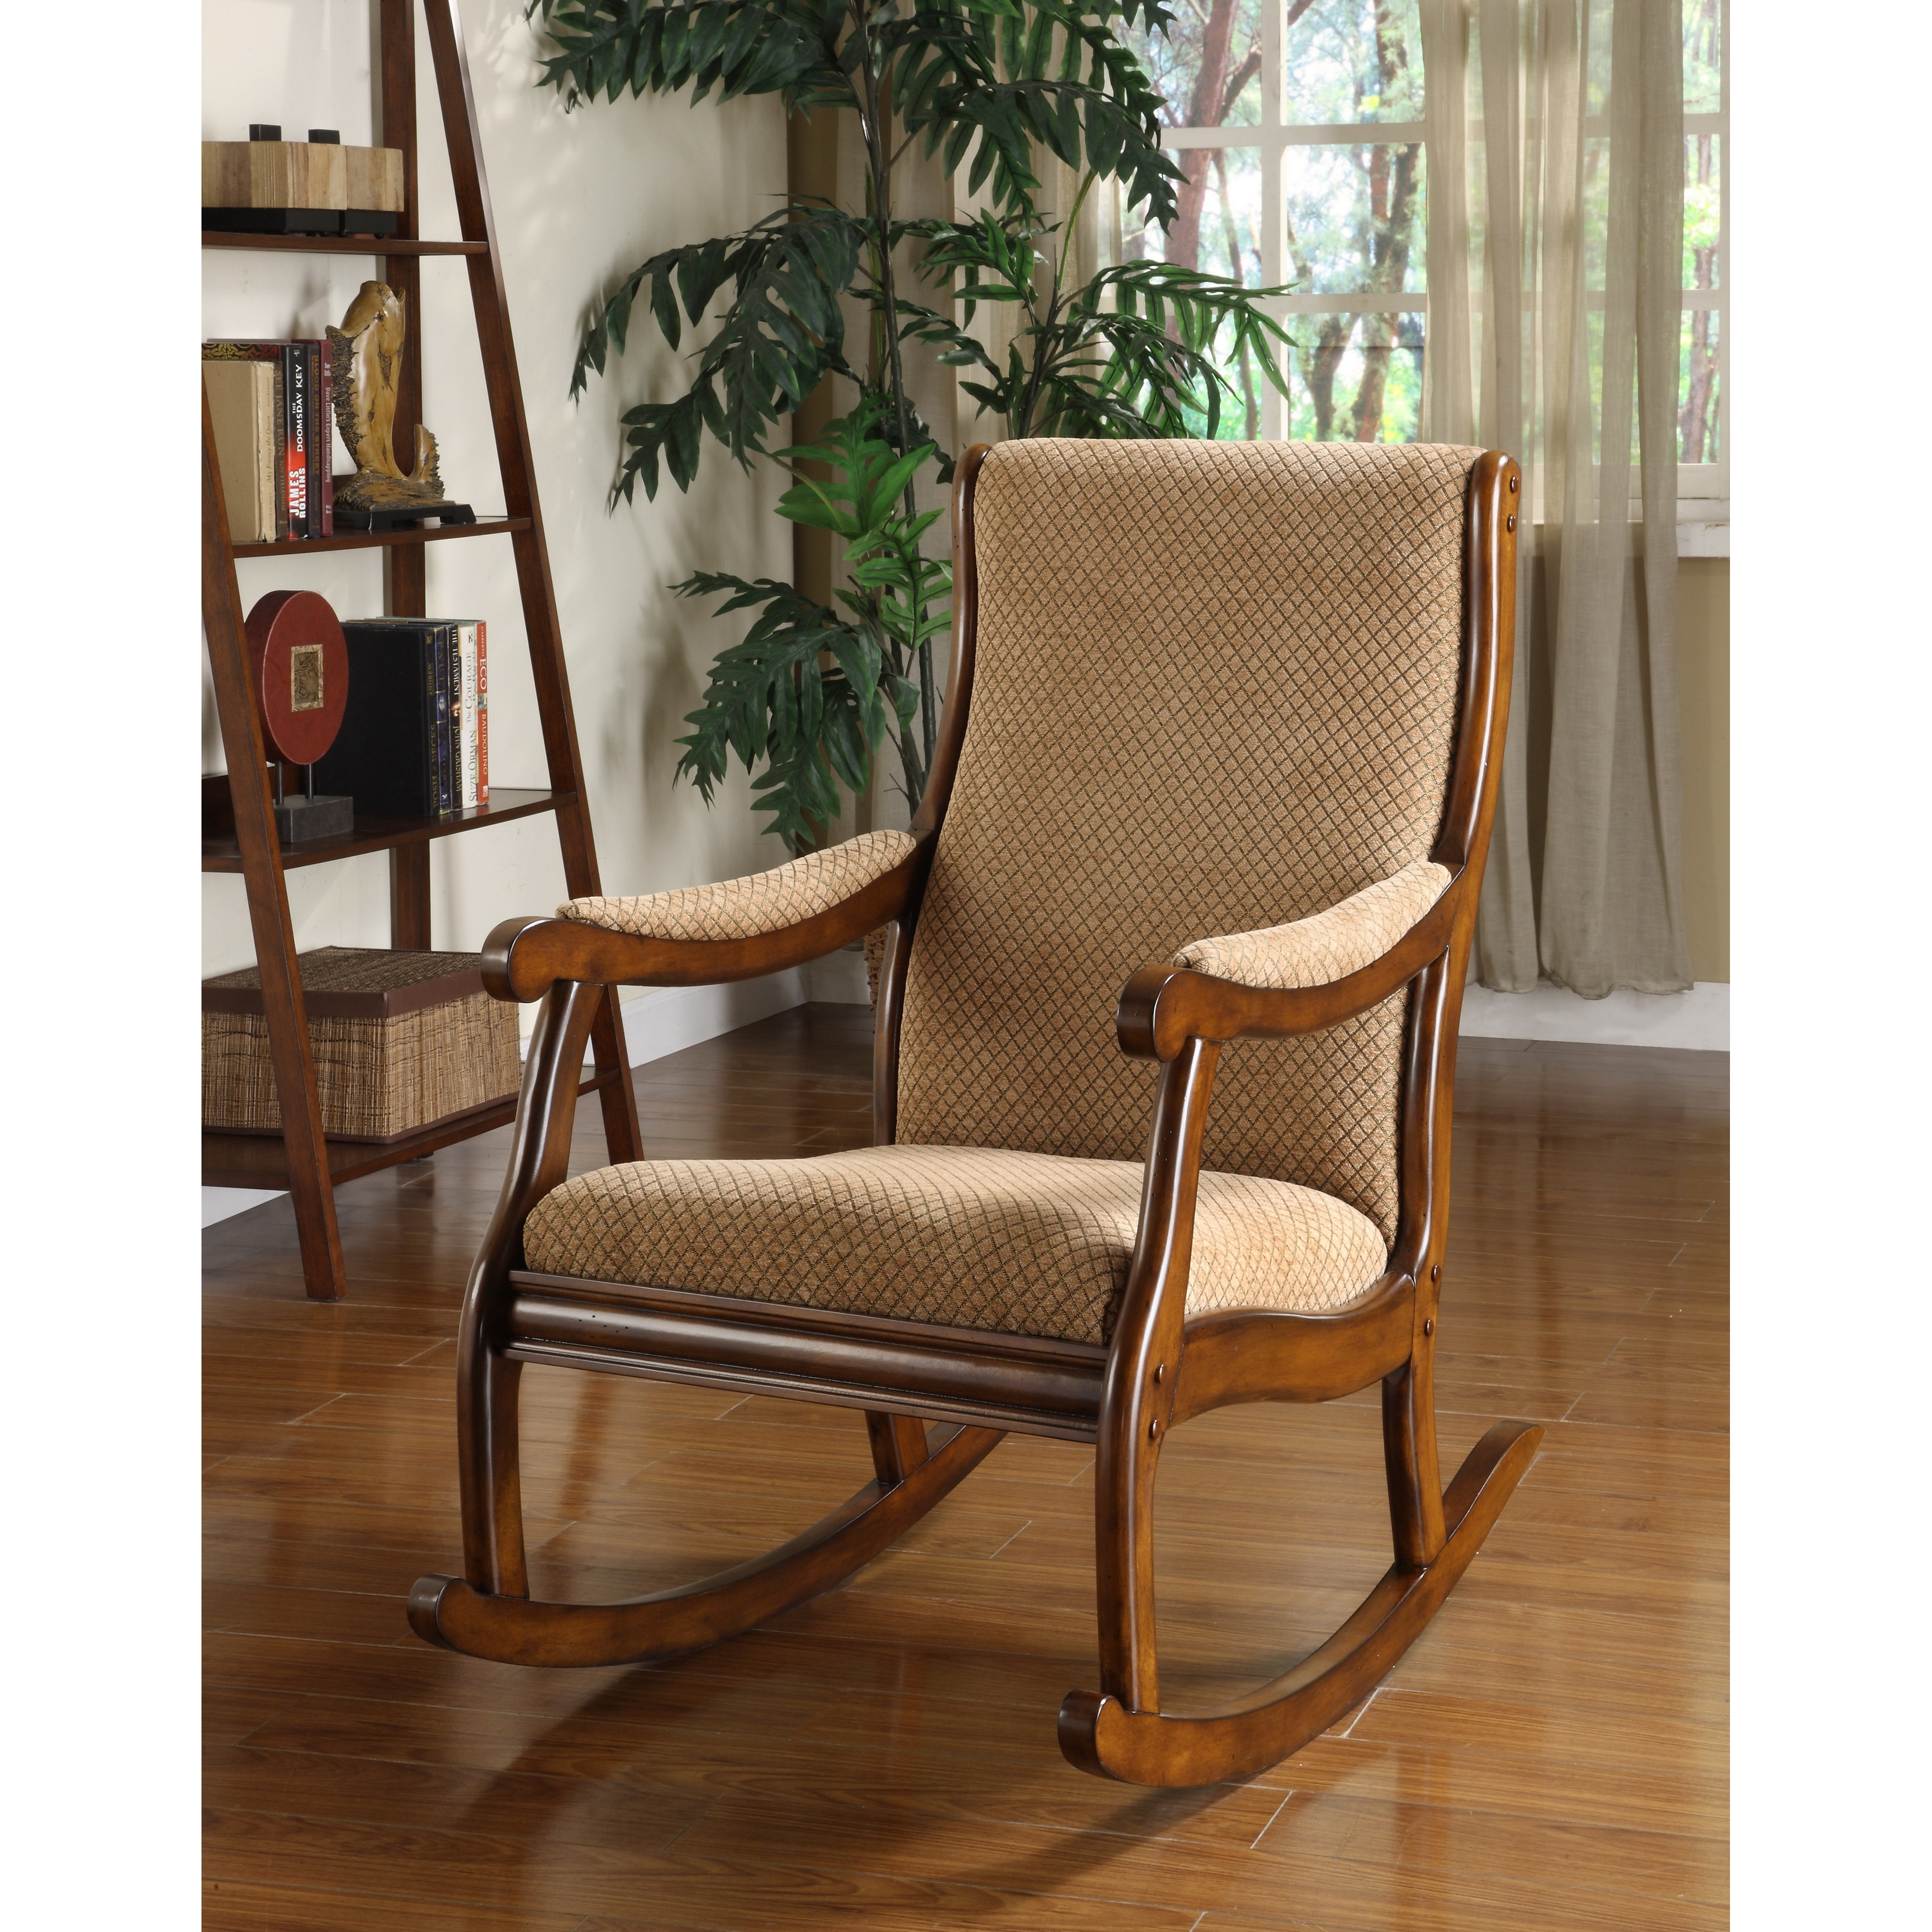 Superb Antique Transitional Warm Oak Rocking Chair By Foa Pabps2019 Chair Design Images Pabps2019Com